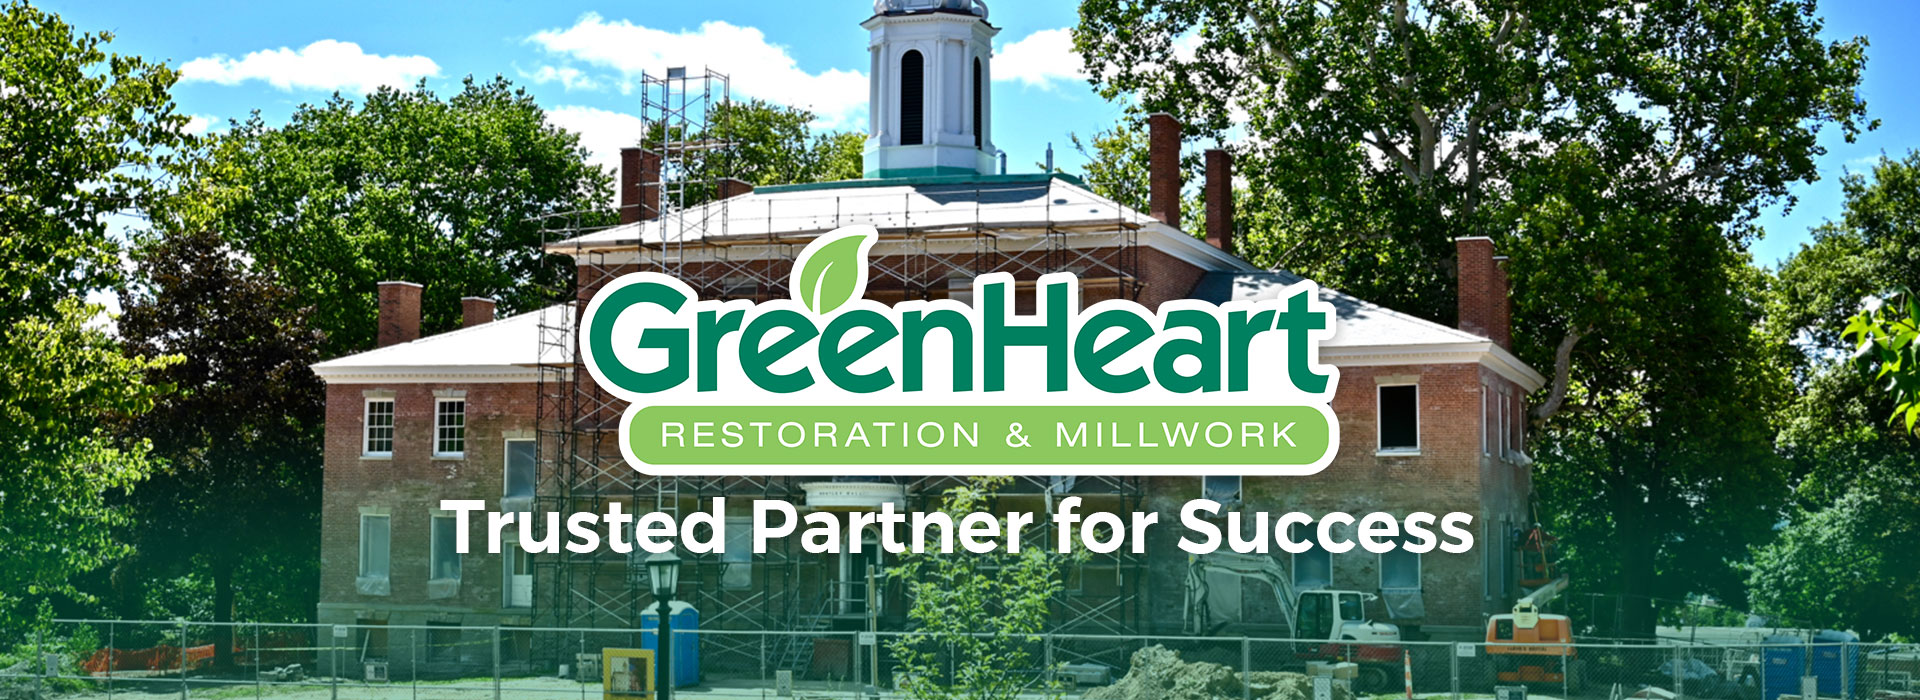 GreenHeart Restoration and Millwork - Trusted Partner for Success